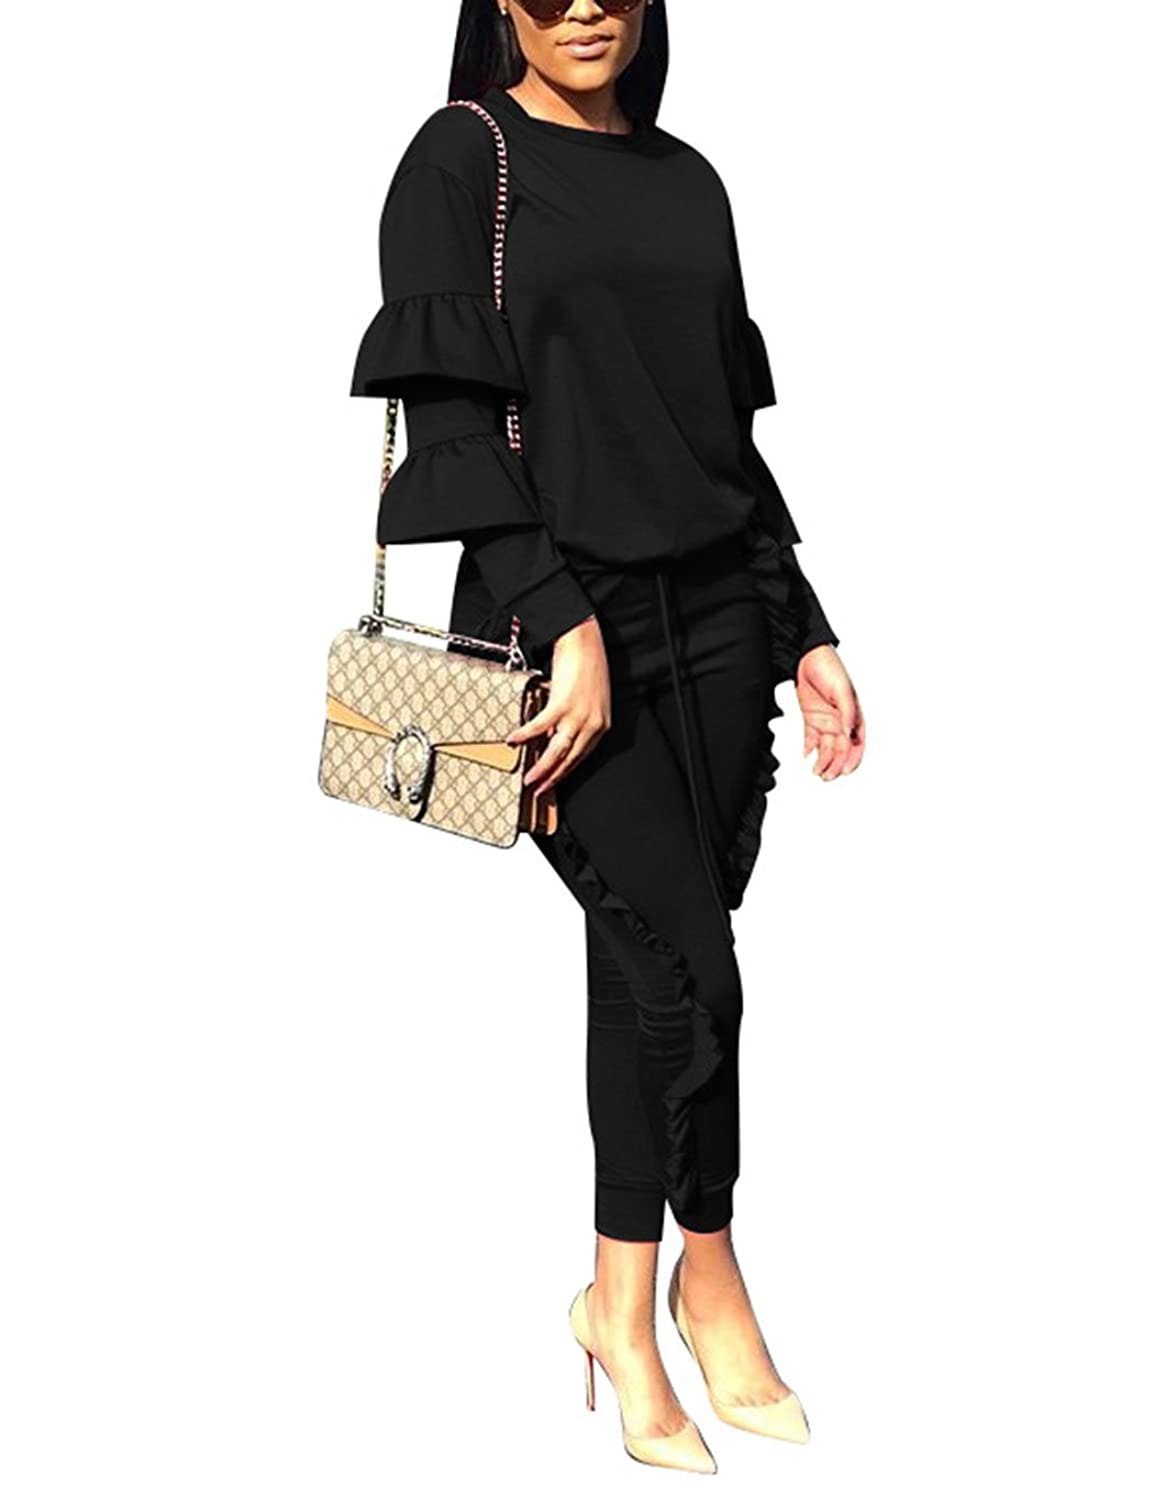 df90d2ff3d6f Subtle Flavor Women 2 Pieces Outfits Puff Sleeve Top and Long Flounced  Pants Sweatsuits Set Tracksuits